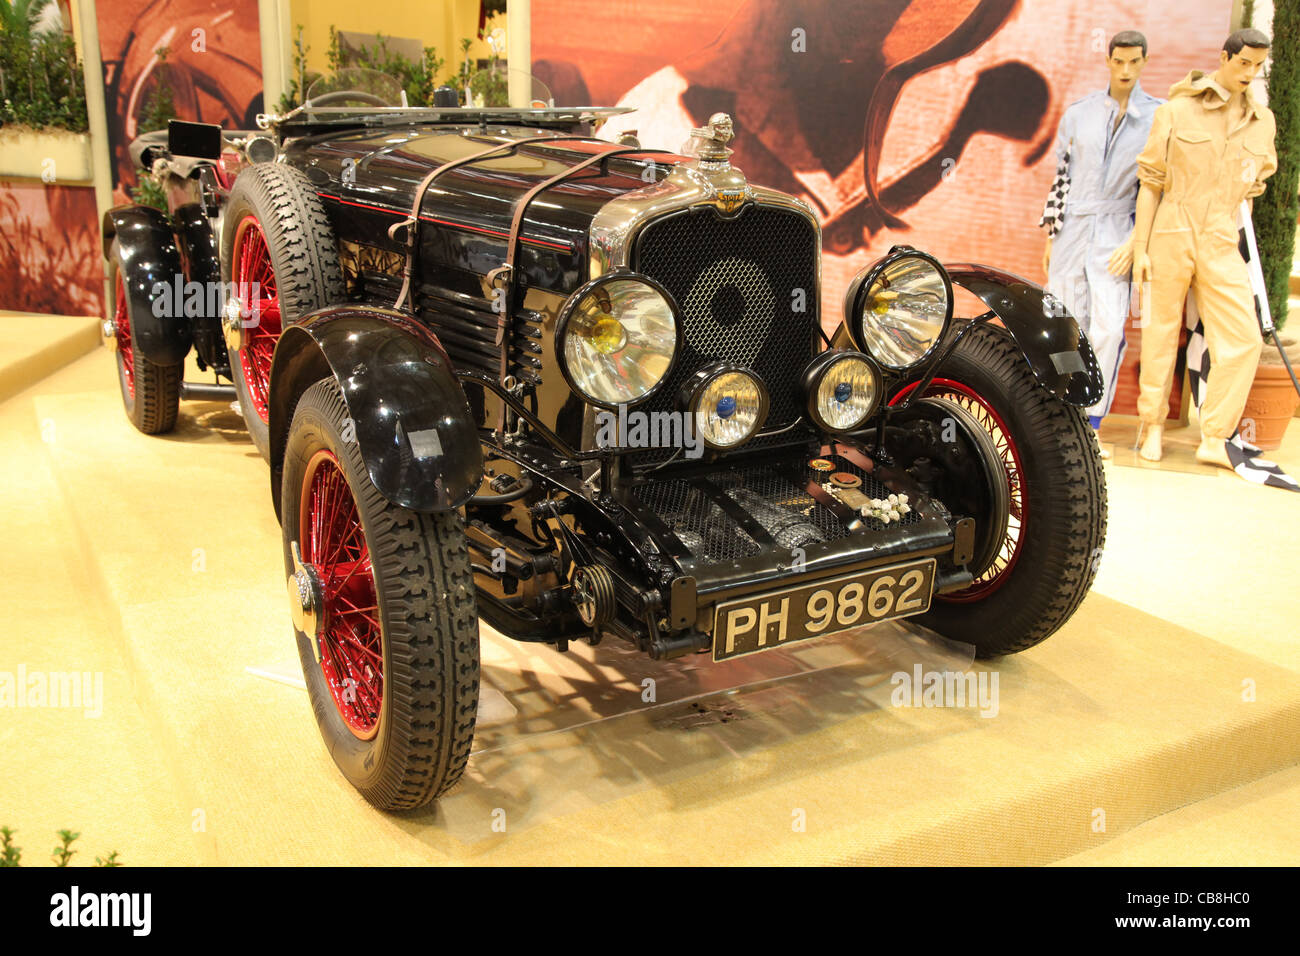 Historic Racing Car Stutz Blackhawk from 1928 shown at the Essen Motor Show in Essen, Germany, on November 29, 2 - Stock Image